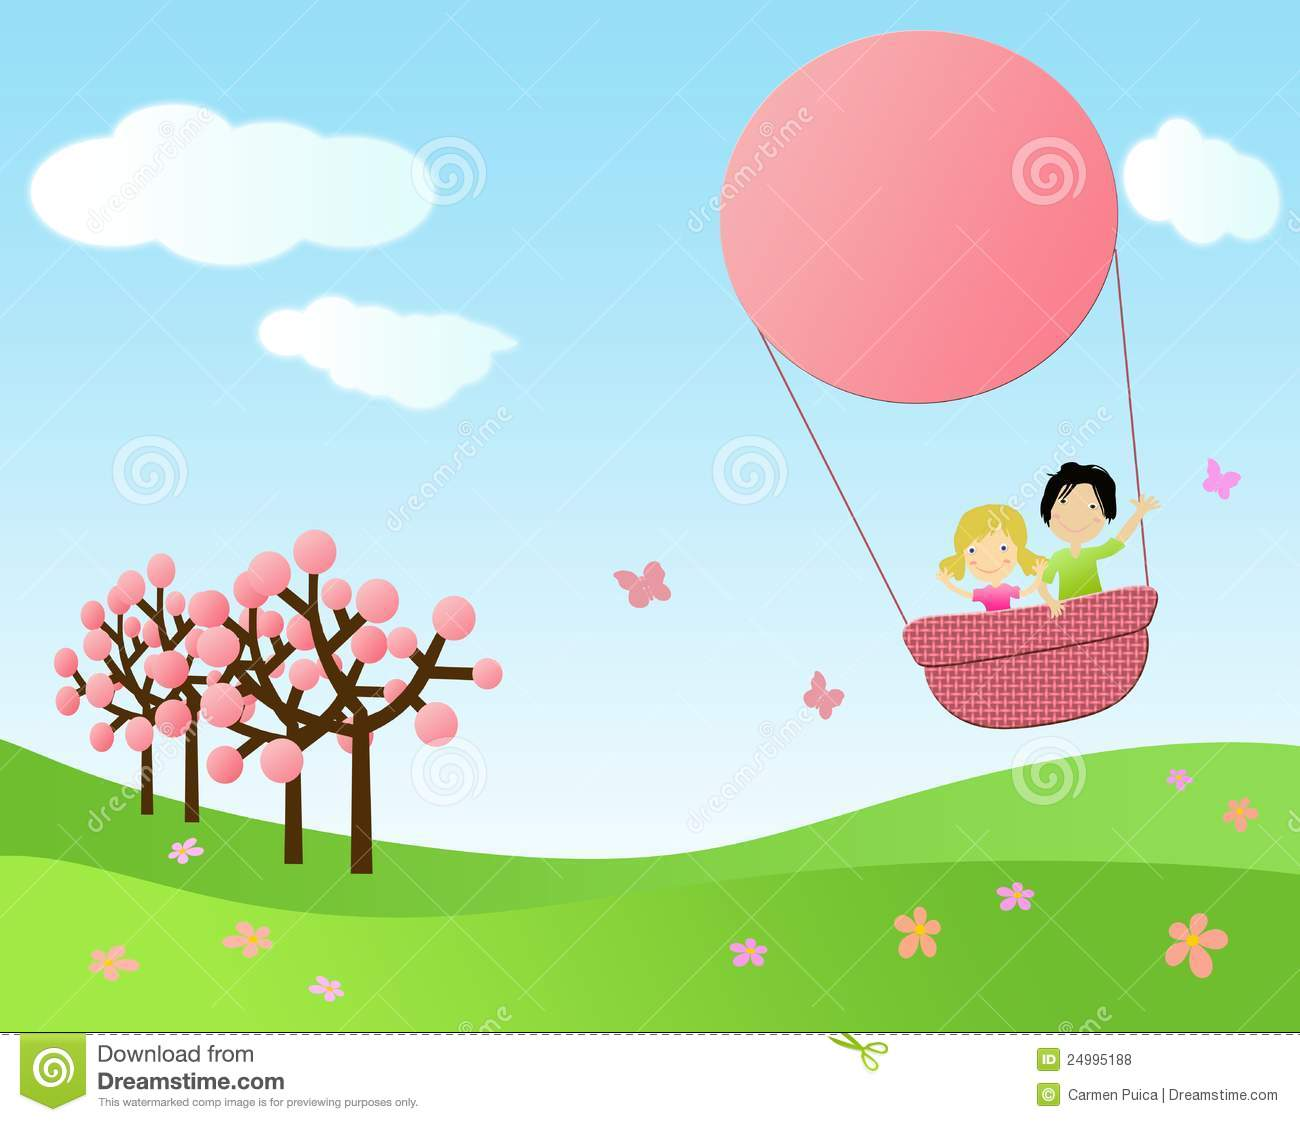 Cartoon Girl And Boy Wallpaper Children Flying In A Hot Air Balloon Royalty Free Stock